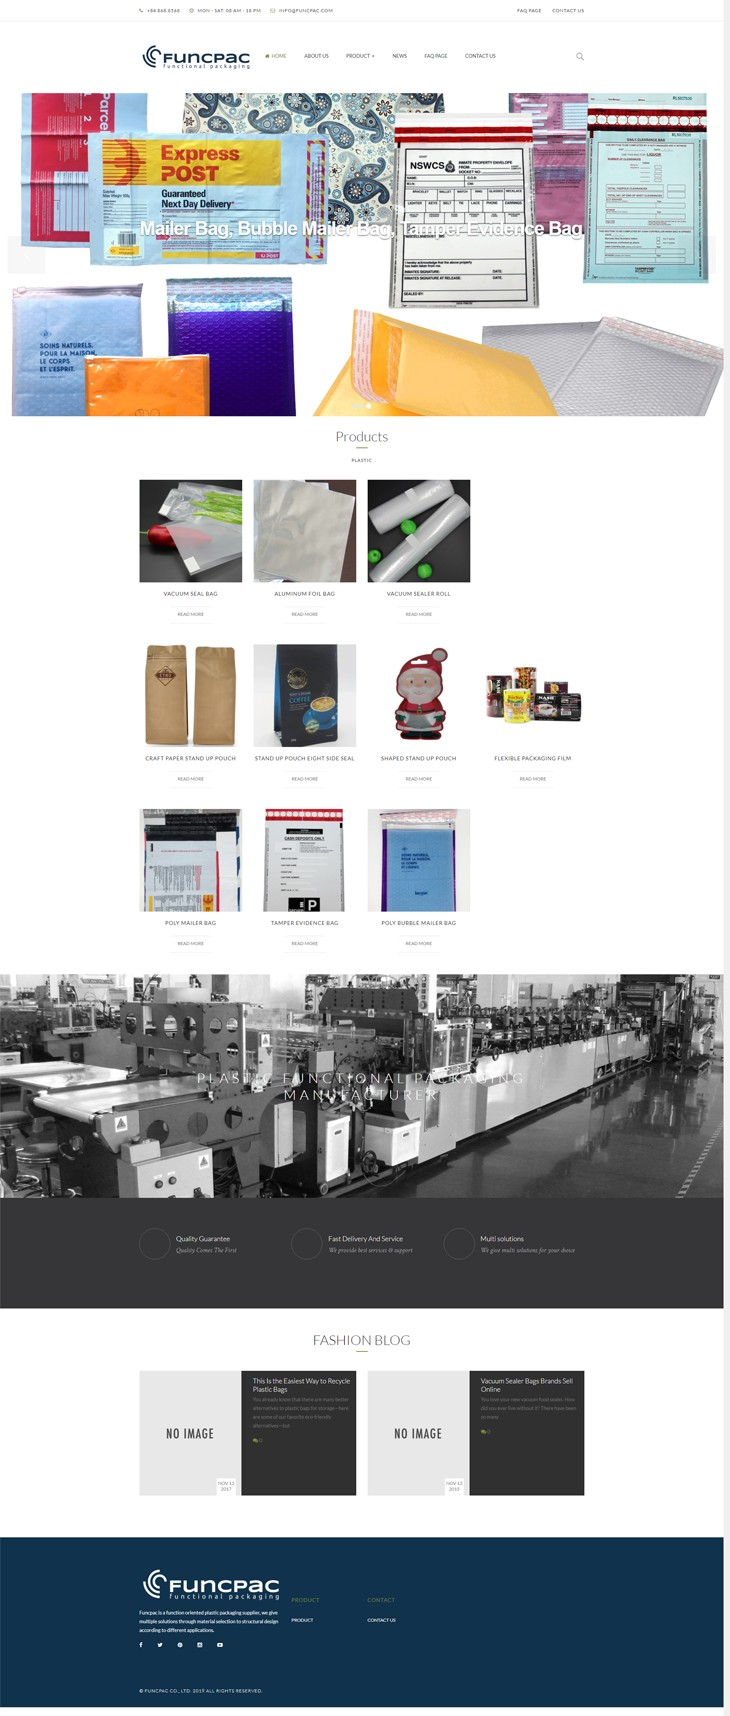 Funcpac _ Functional Plastic Packaging Supplier_ad.jpg